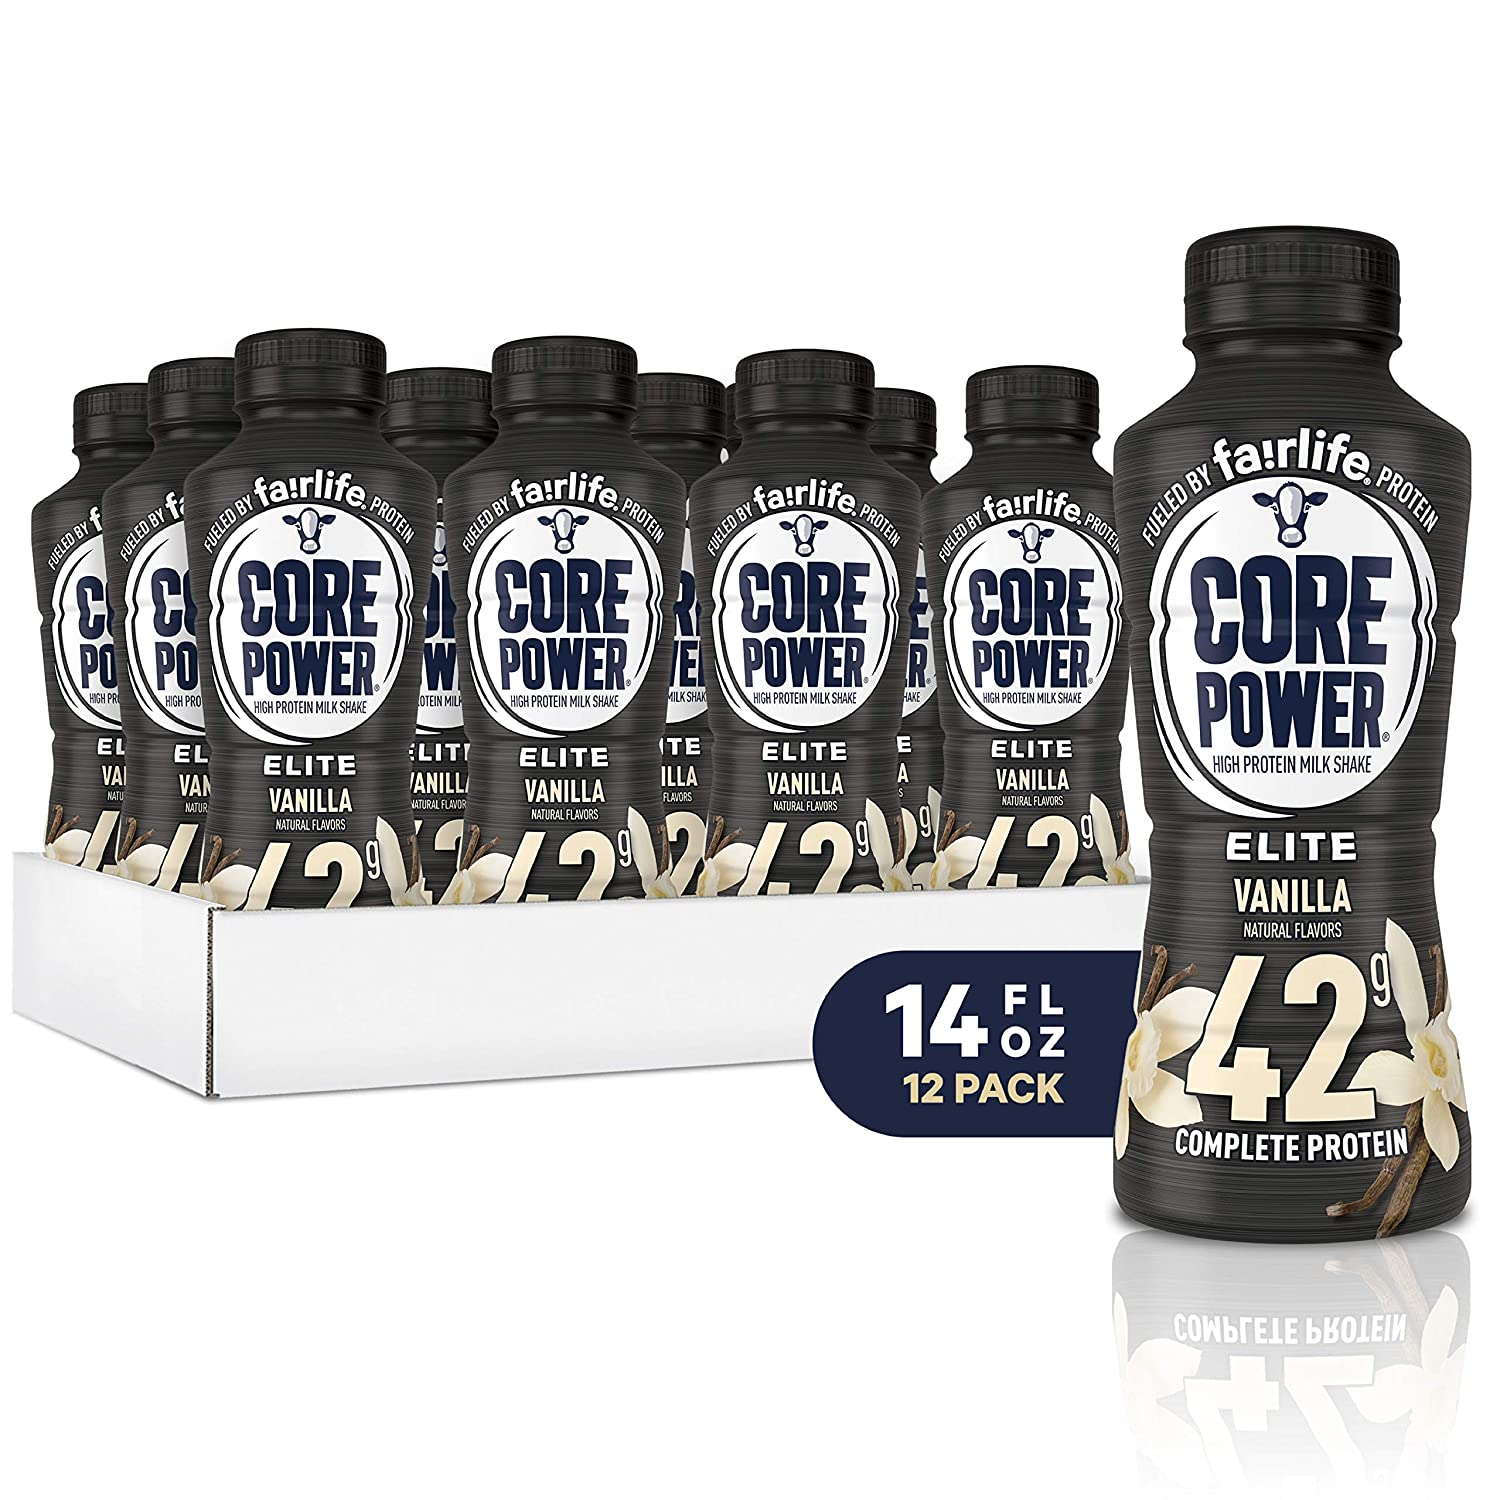 Core Power Elite High Protein Shake (42g), Vanilla, Ready To Drink for Workout Recovery, 14 Fl Oz Bottles (12 Pack)